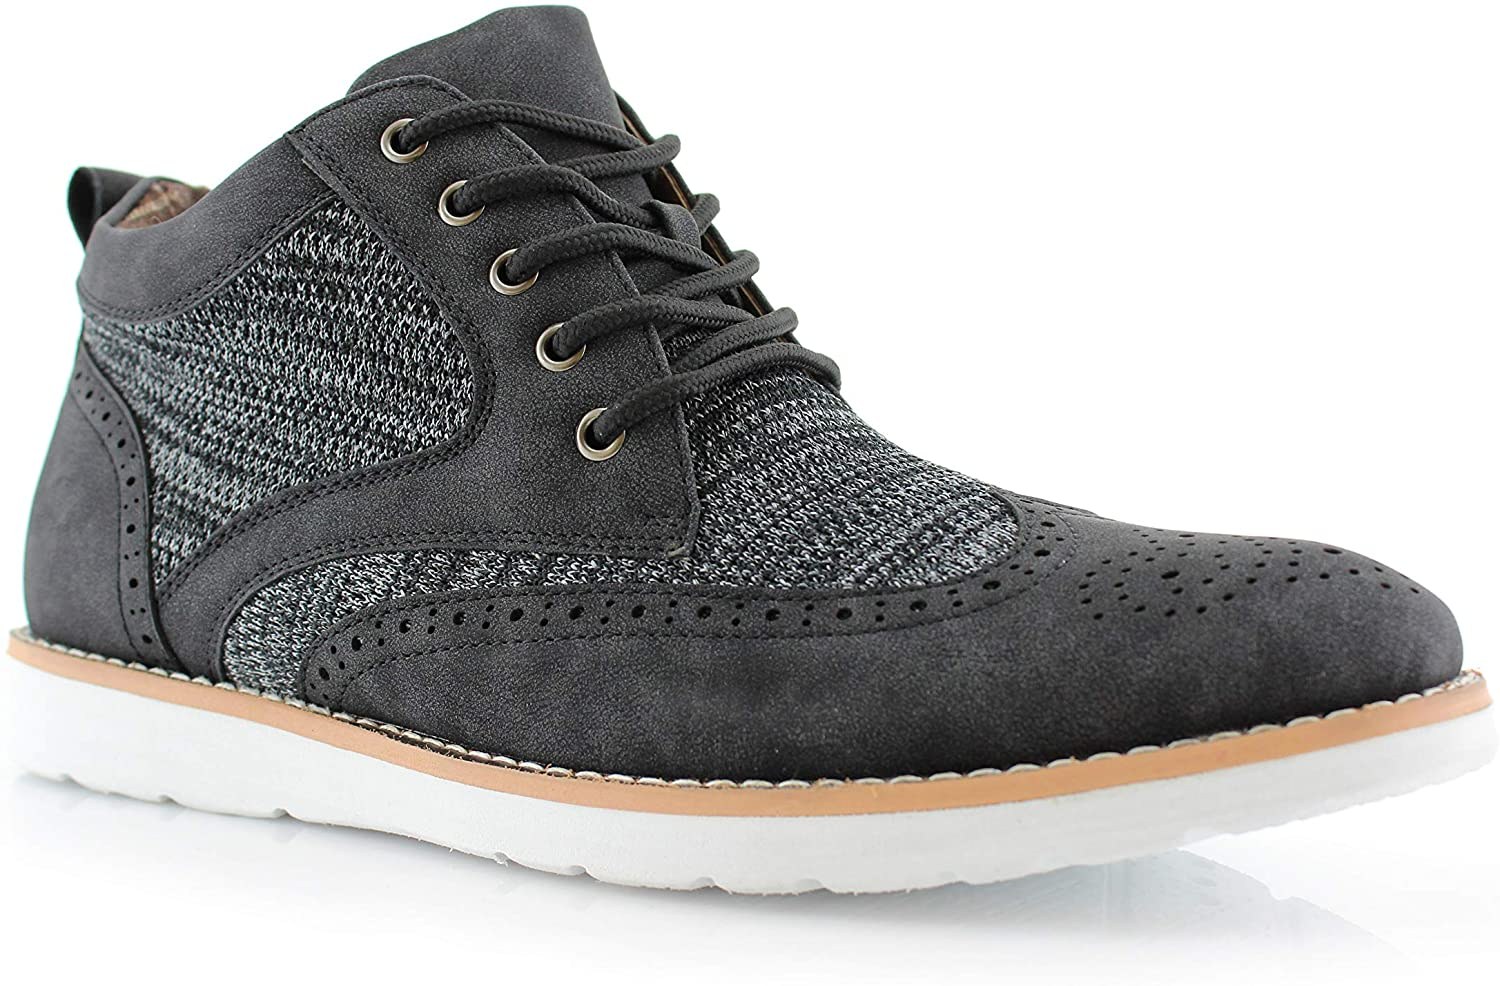 Polar Fox Mens Colbert MPX506059 Wingtip Memory Foam Mid-Top Sneaker Knitted Perforated Casual Chukka Boots